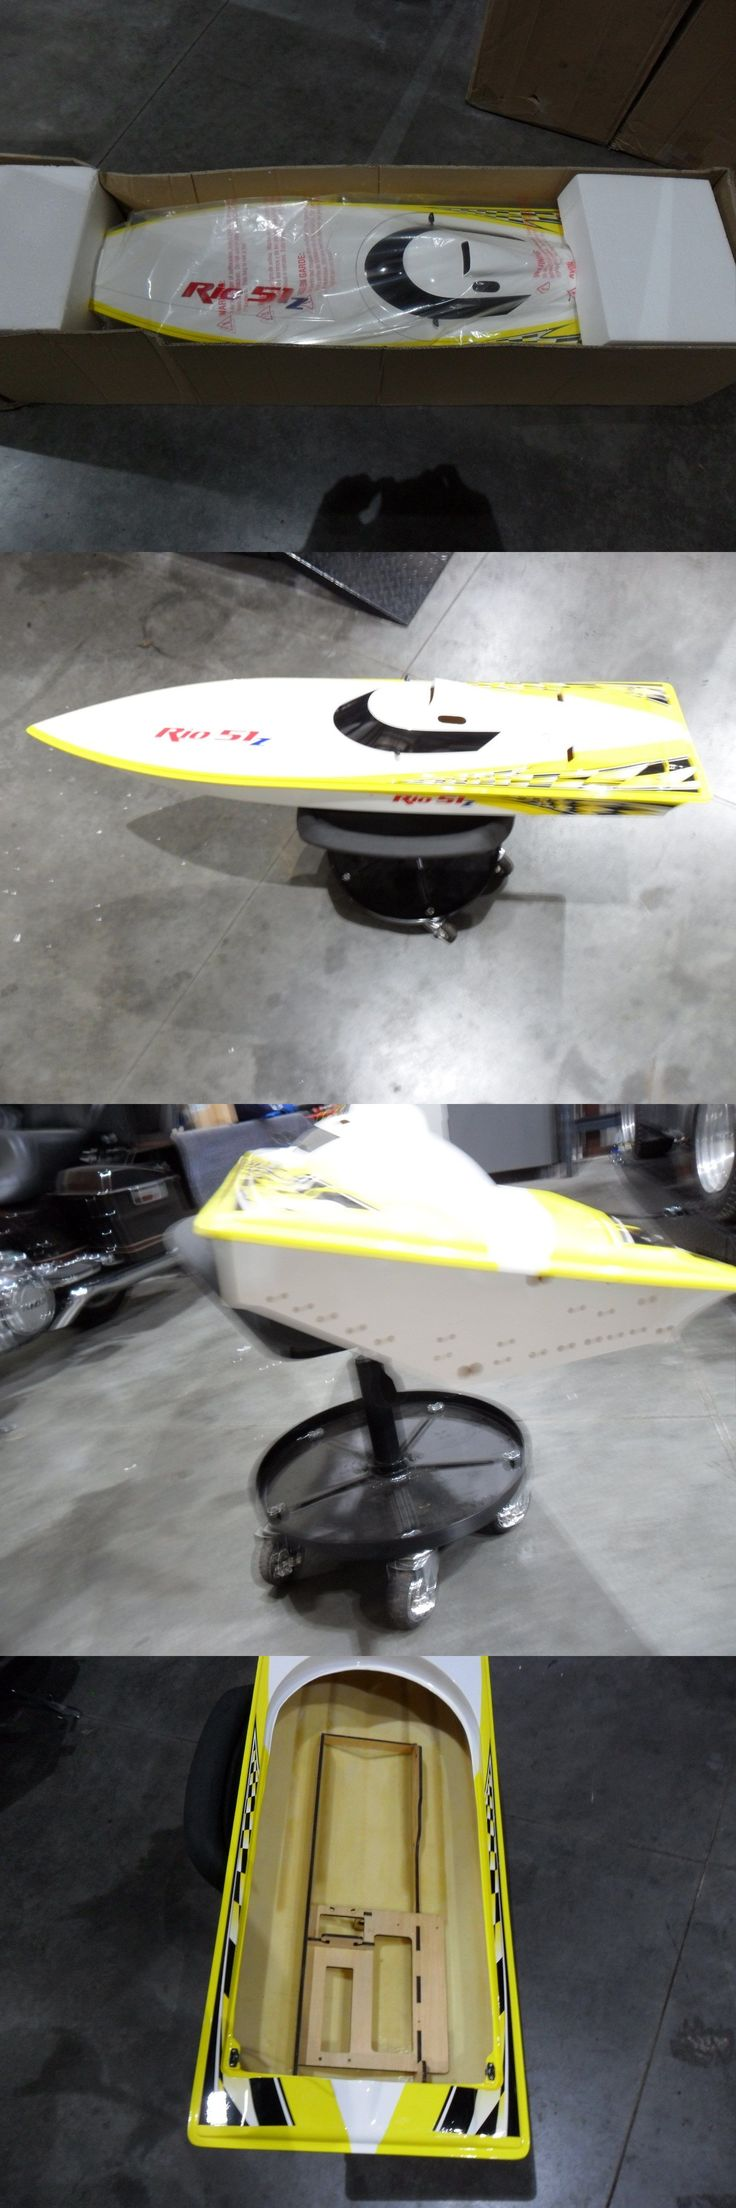 Boats and Watercraft 87480: New Aquacraft Rc Rio 51Z Boat Gas Hull Gas Brushless Conversion Leopard Zenoah -> BUY IT NOW ONLY: $250 on eBay!